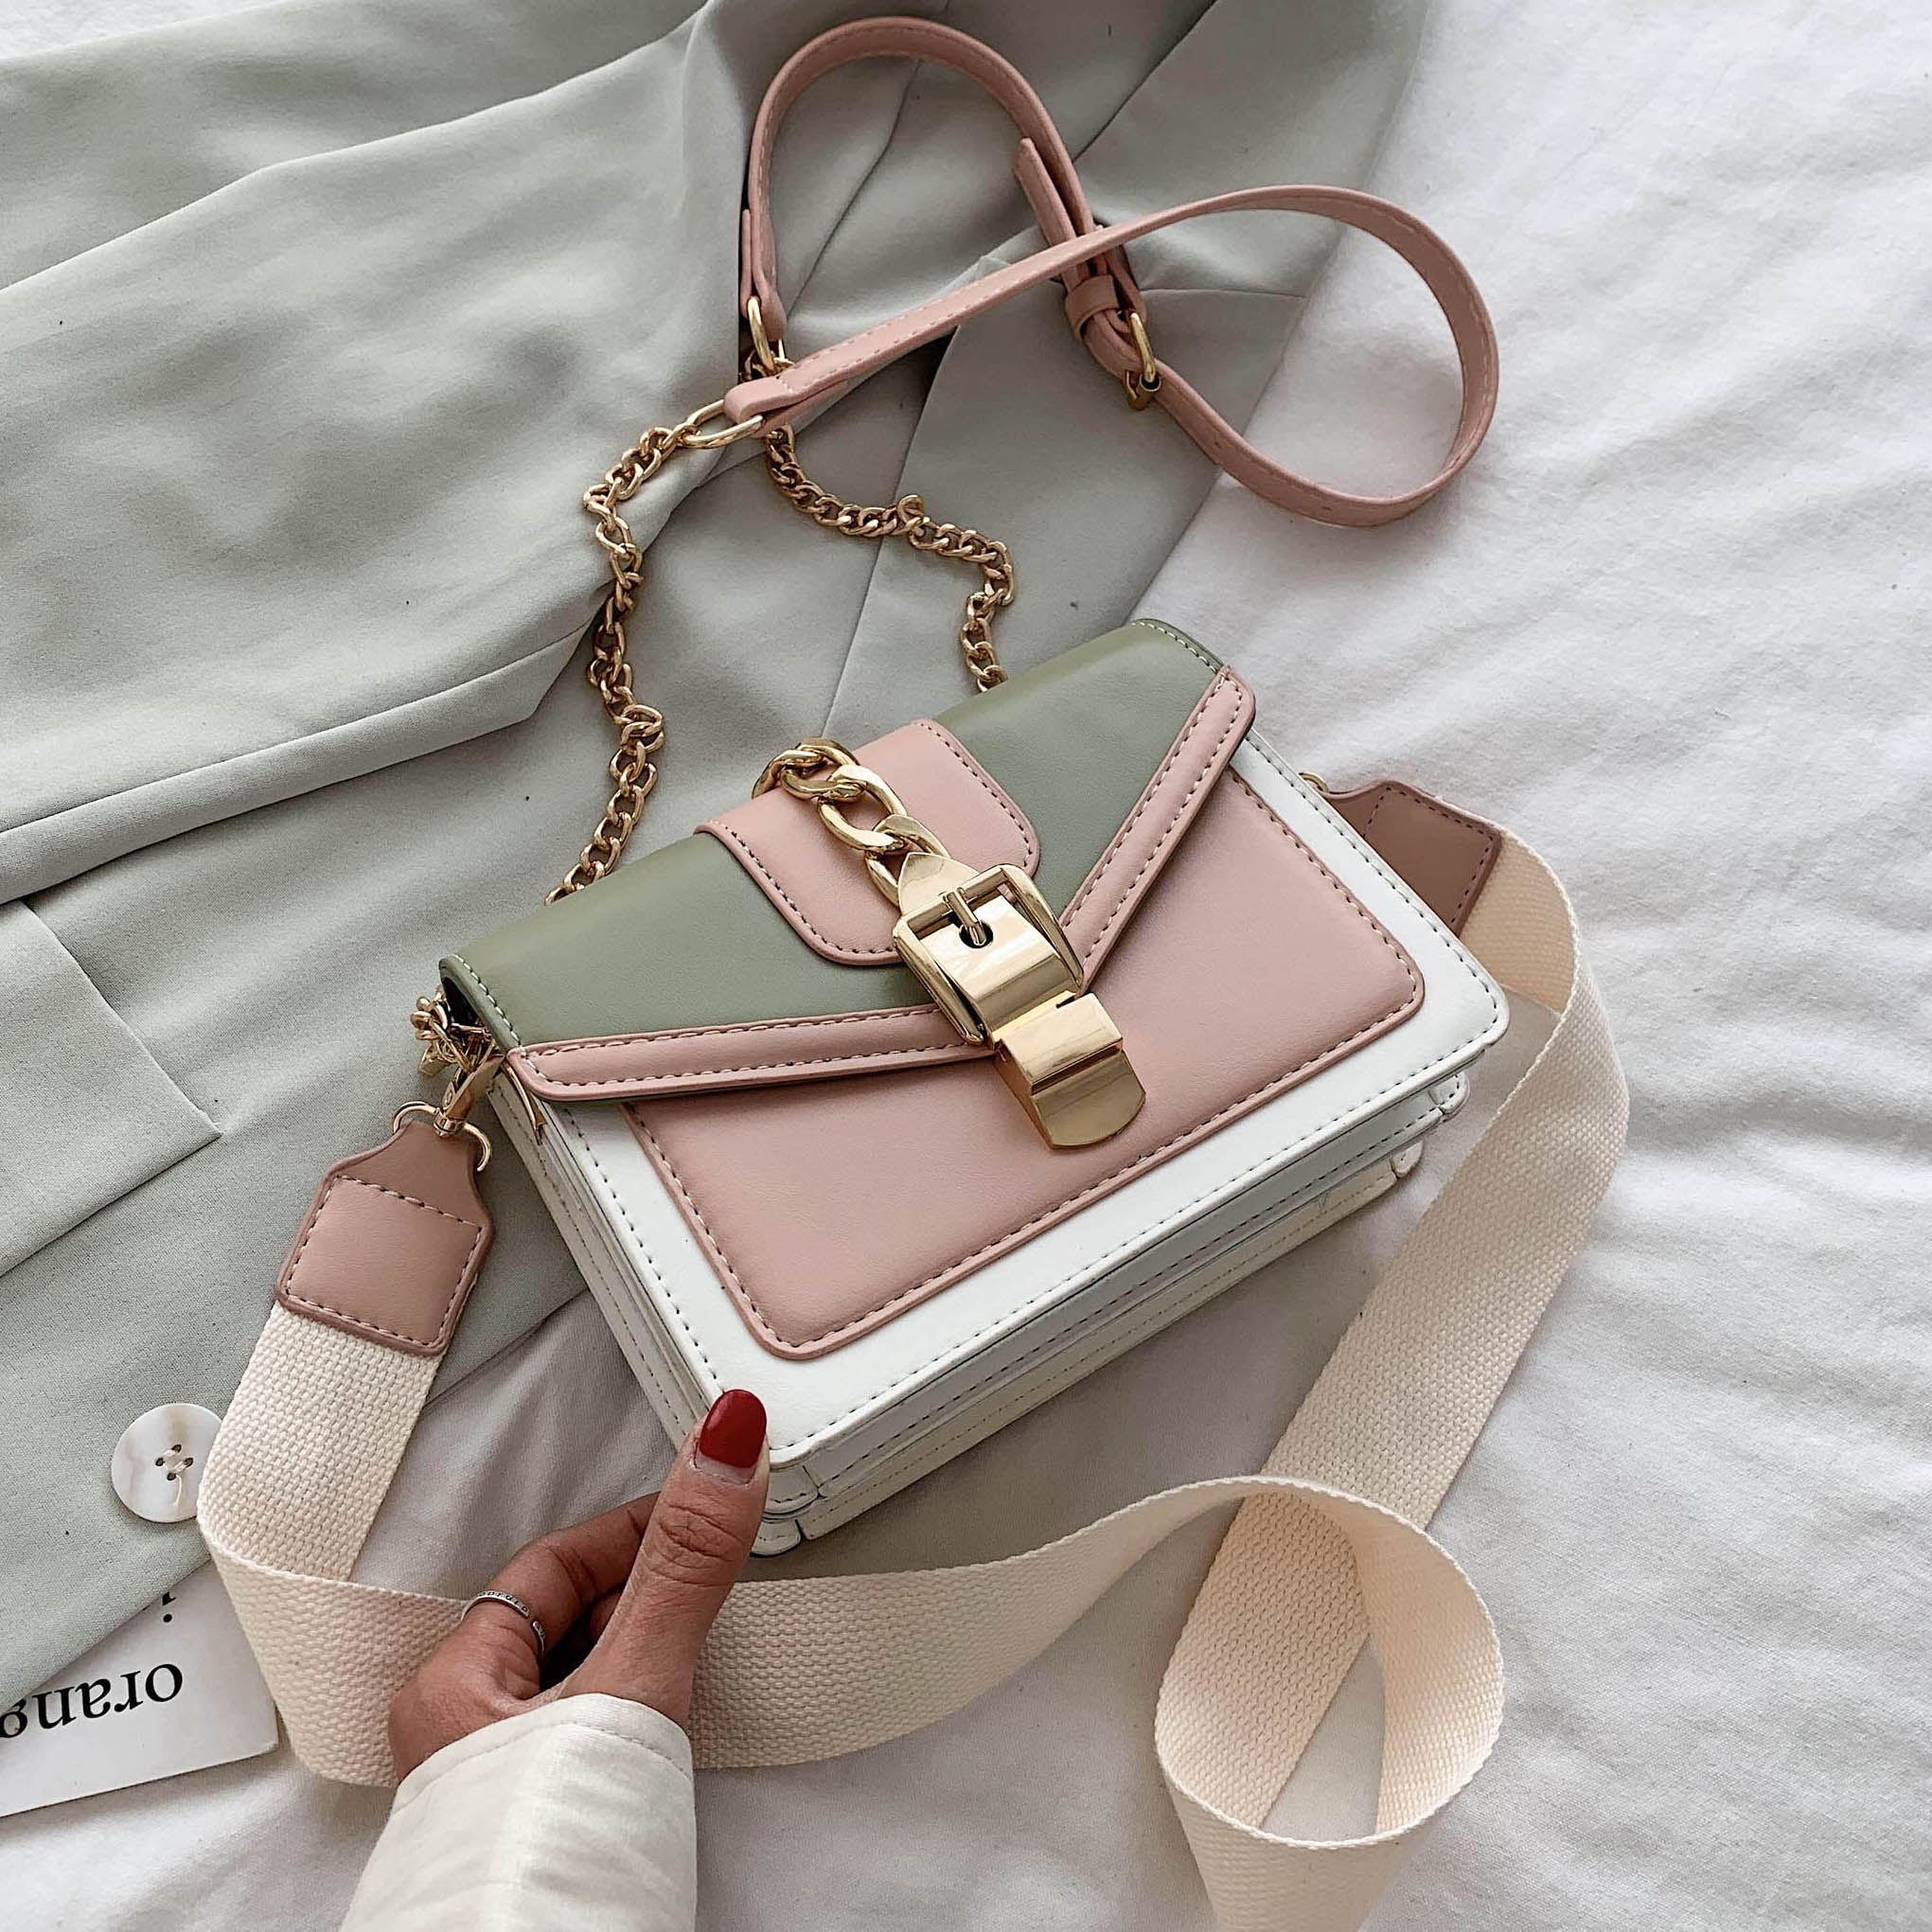 Contrast Color PU Leather Crossbody Bags For Women 2020 Summer Travel Small Handbag Shoulder Messenger Bag Ladies Cross Body Bag